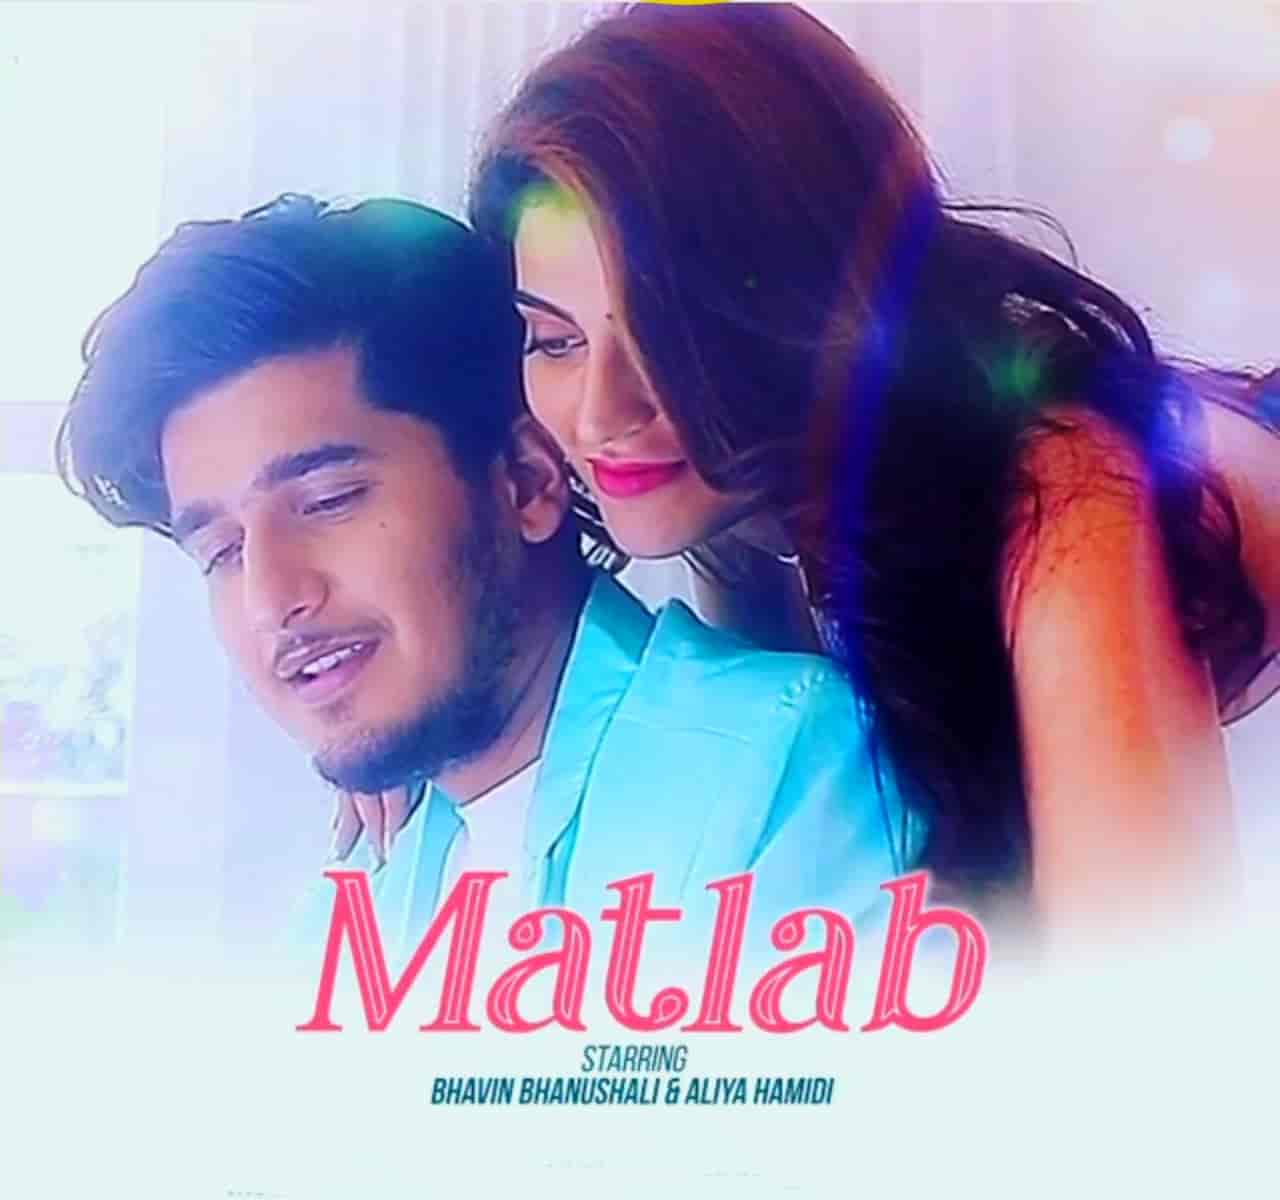 Matlab Nikal Gaya Toh Hindi Song Image Features Bhavin Bhanushali and Aliya Hamidi